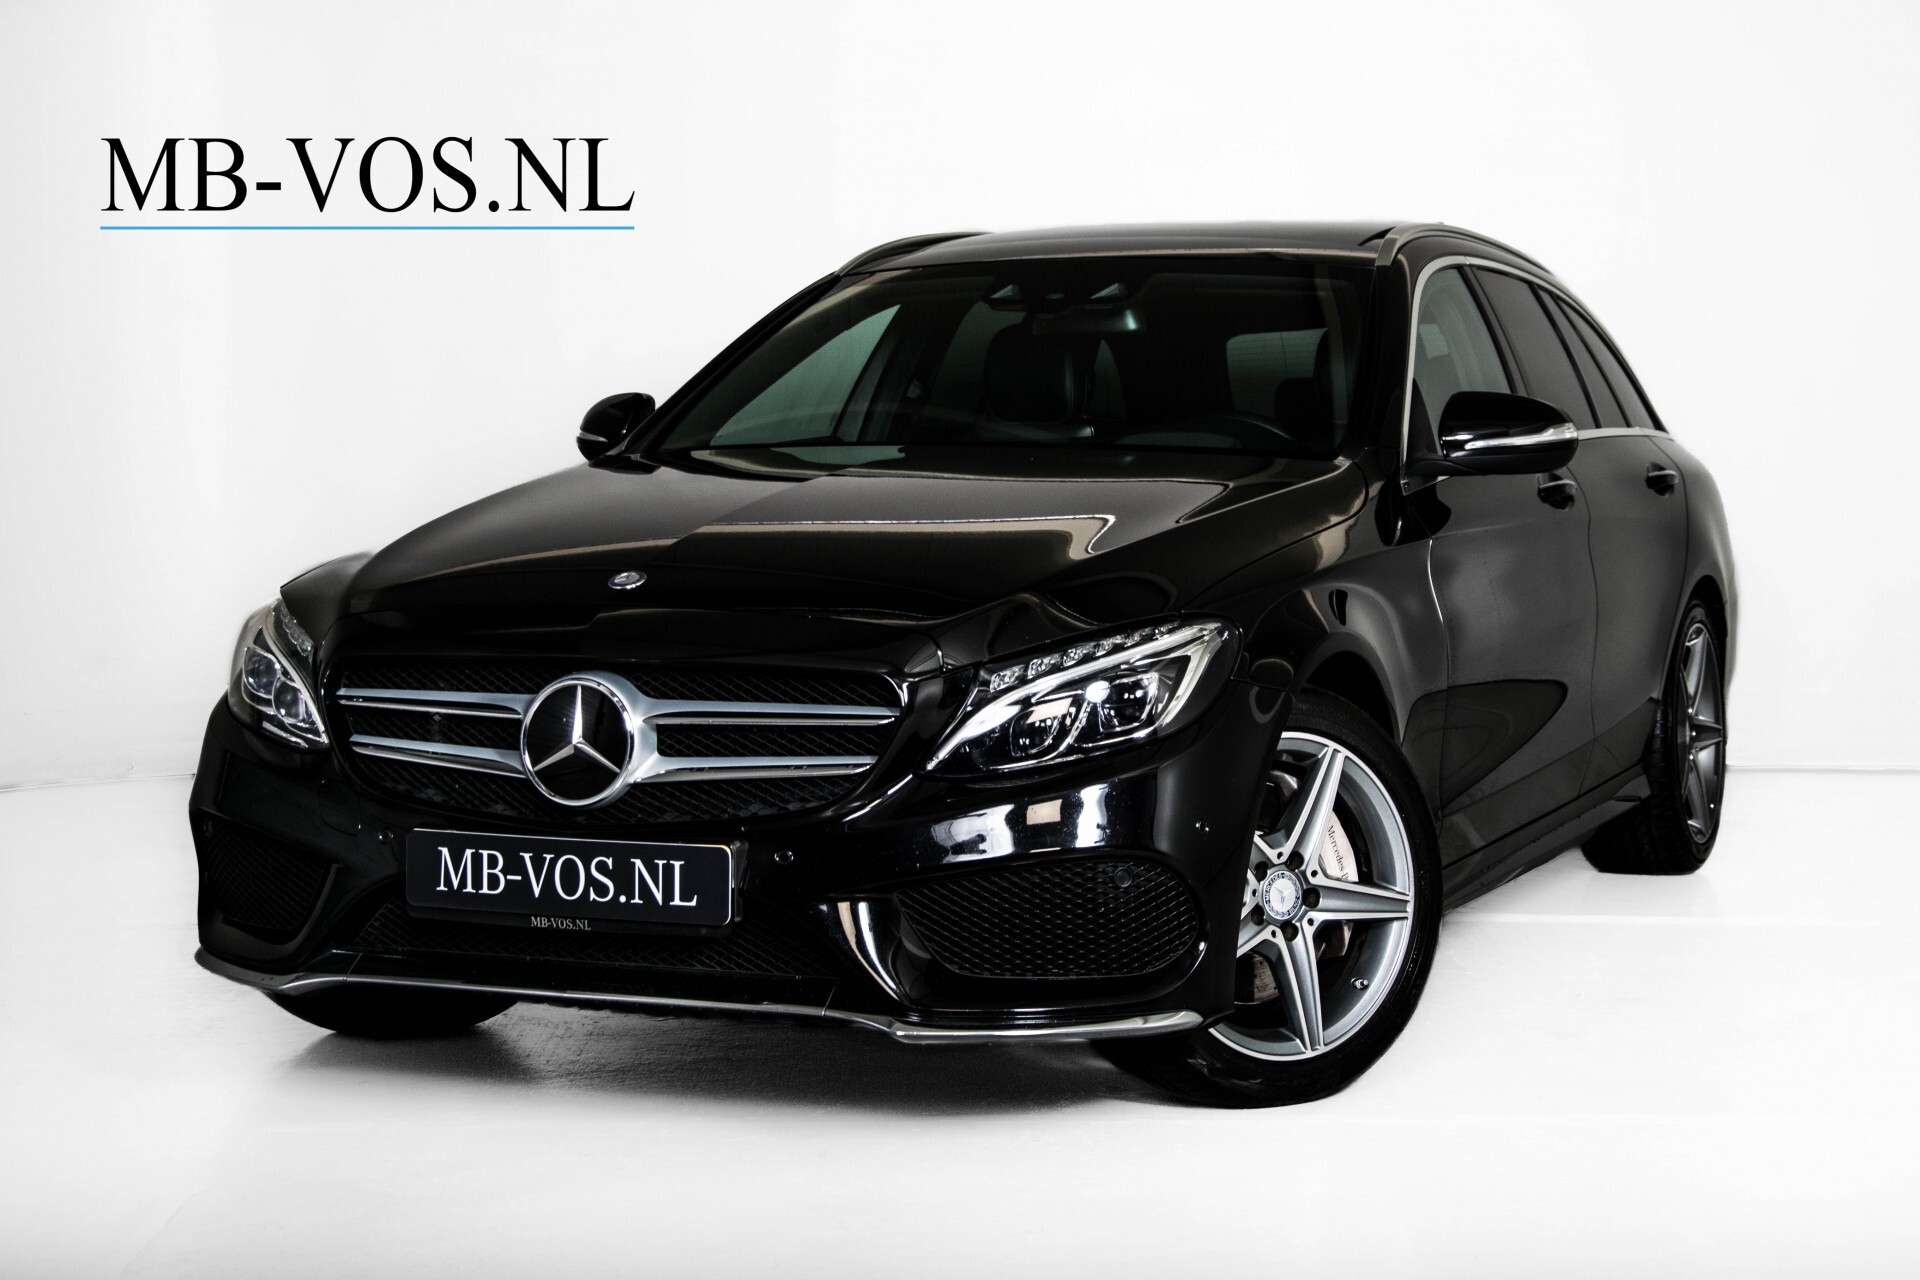 Mercedes-Benz C-Klasse Estate 250 Bluetec AMG Panorama/Distronic/Keyless/Head-Up/Burmester/Comand Aut7 Foto 1